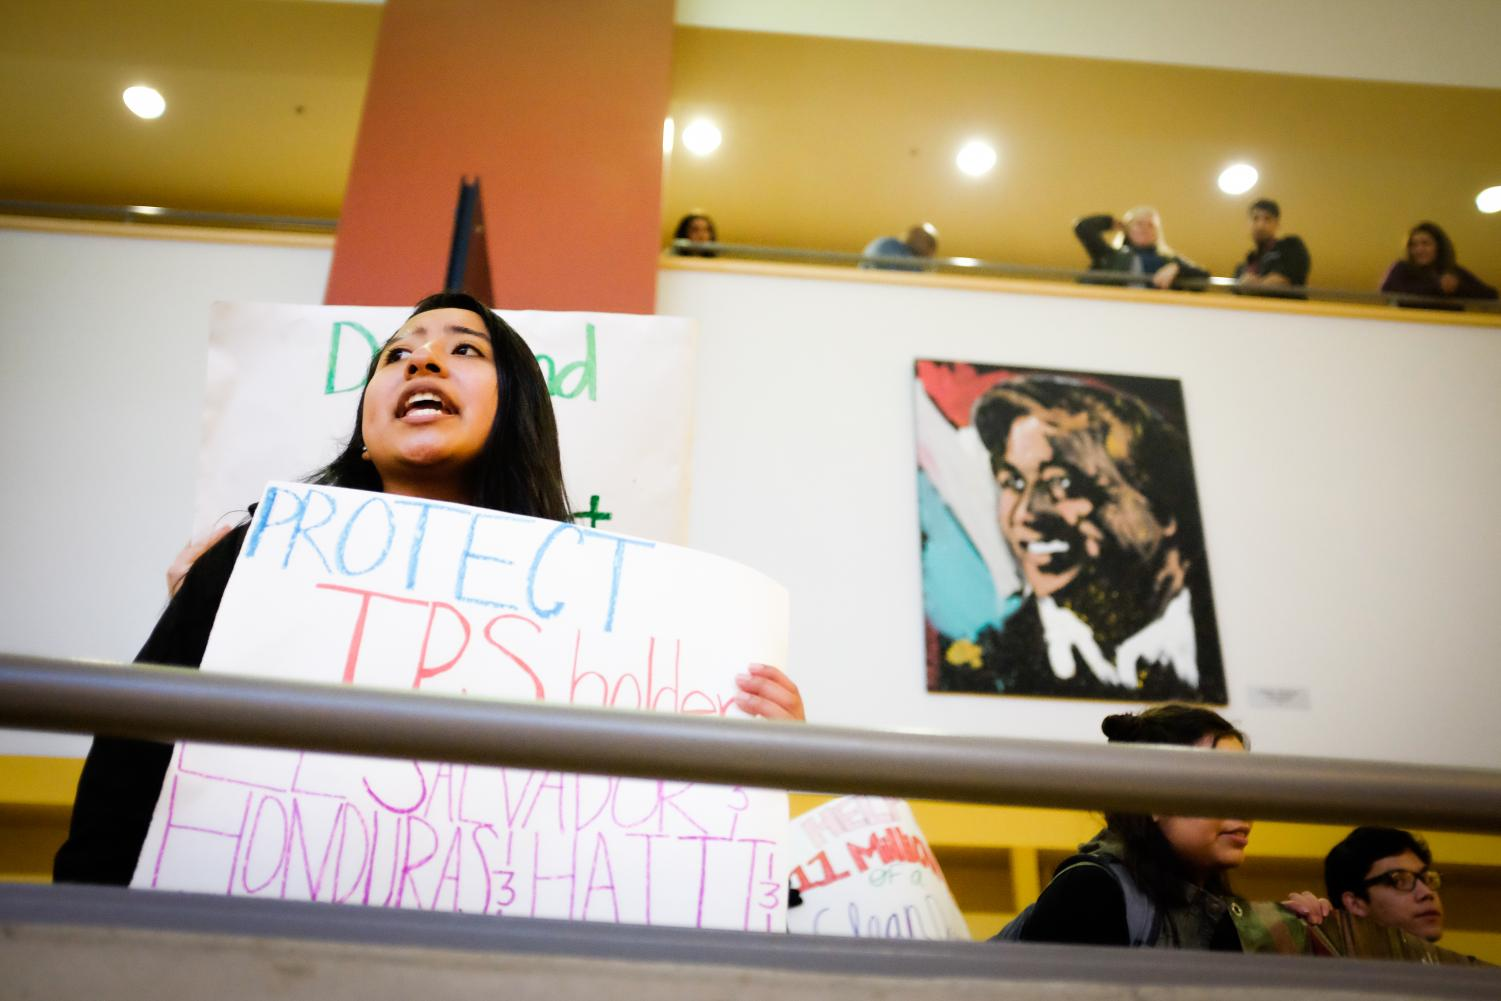 Liliana Fausto and other demonstrators perform chants in the SURC.